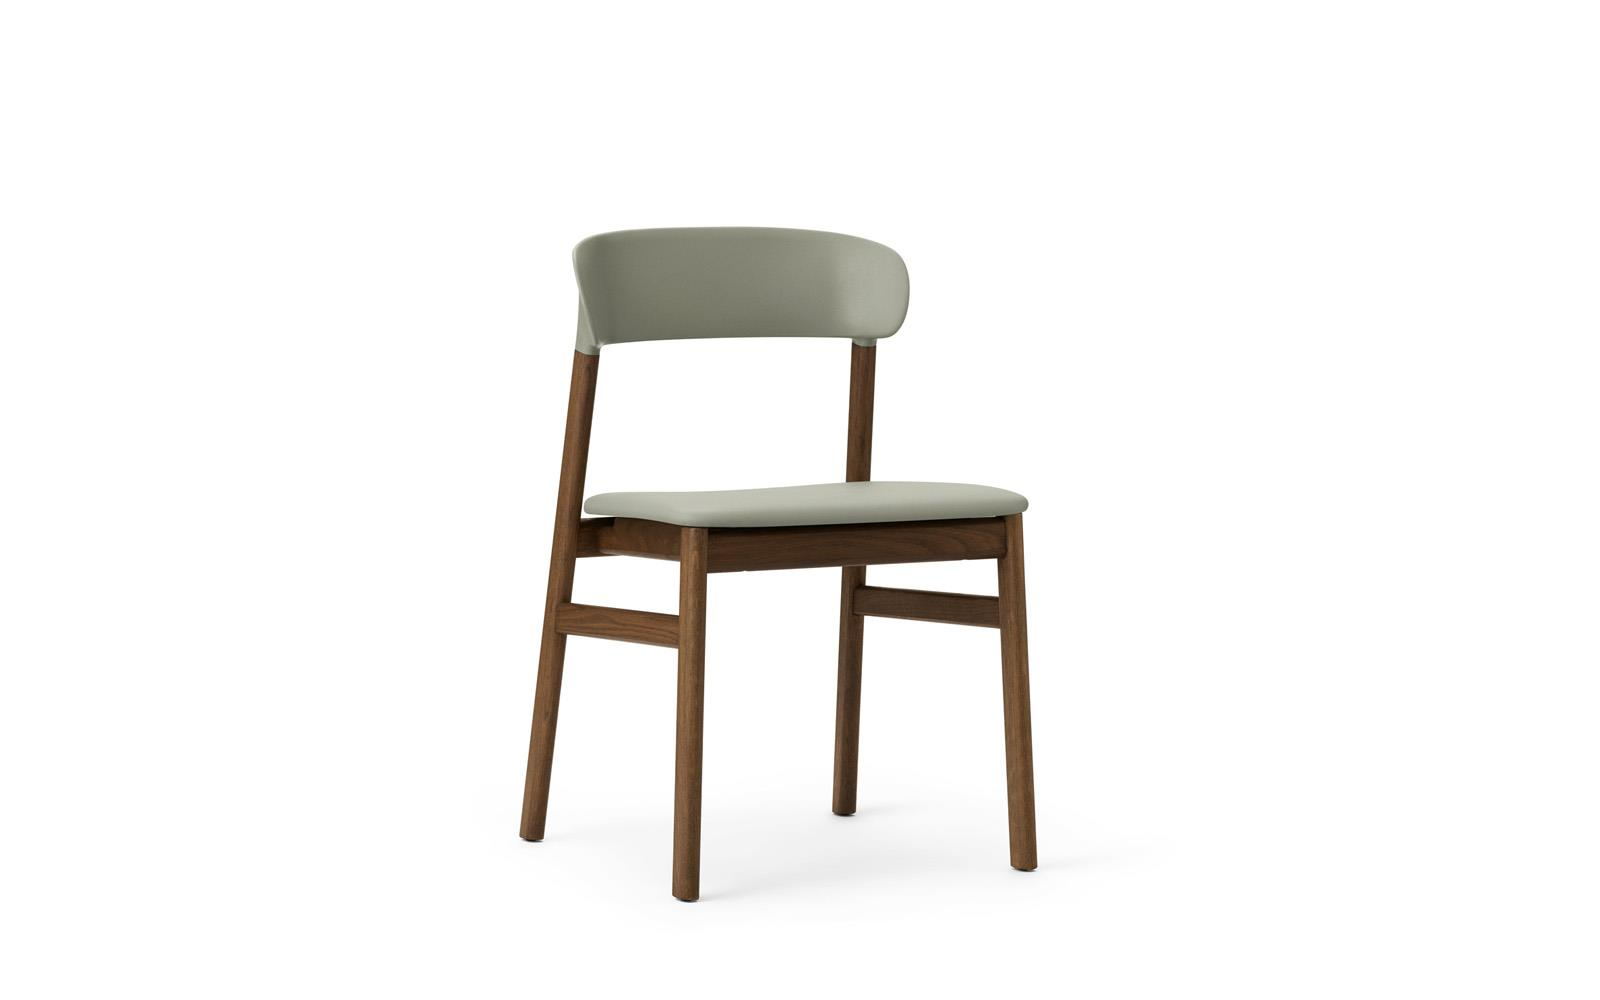 Green Upholstered Chair Herit Chair Upholstery Smoked Oak Spectrum Leather Dusty Green